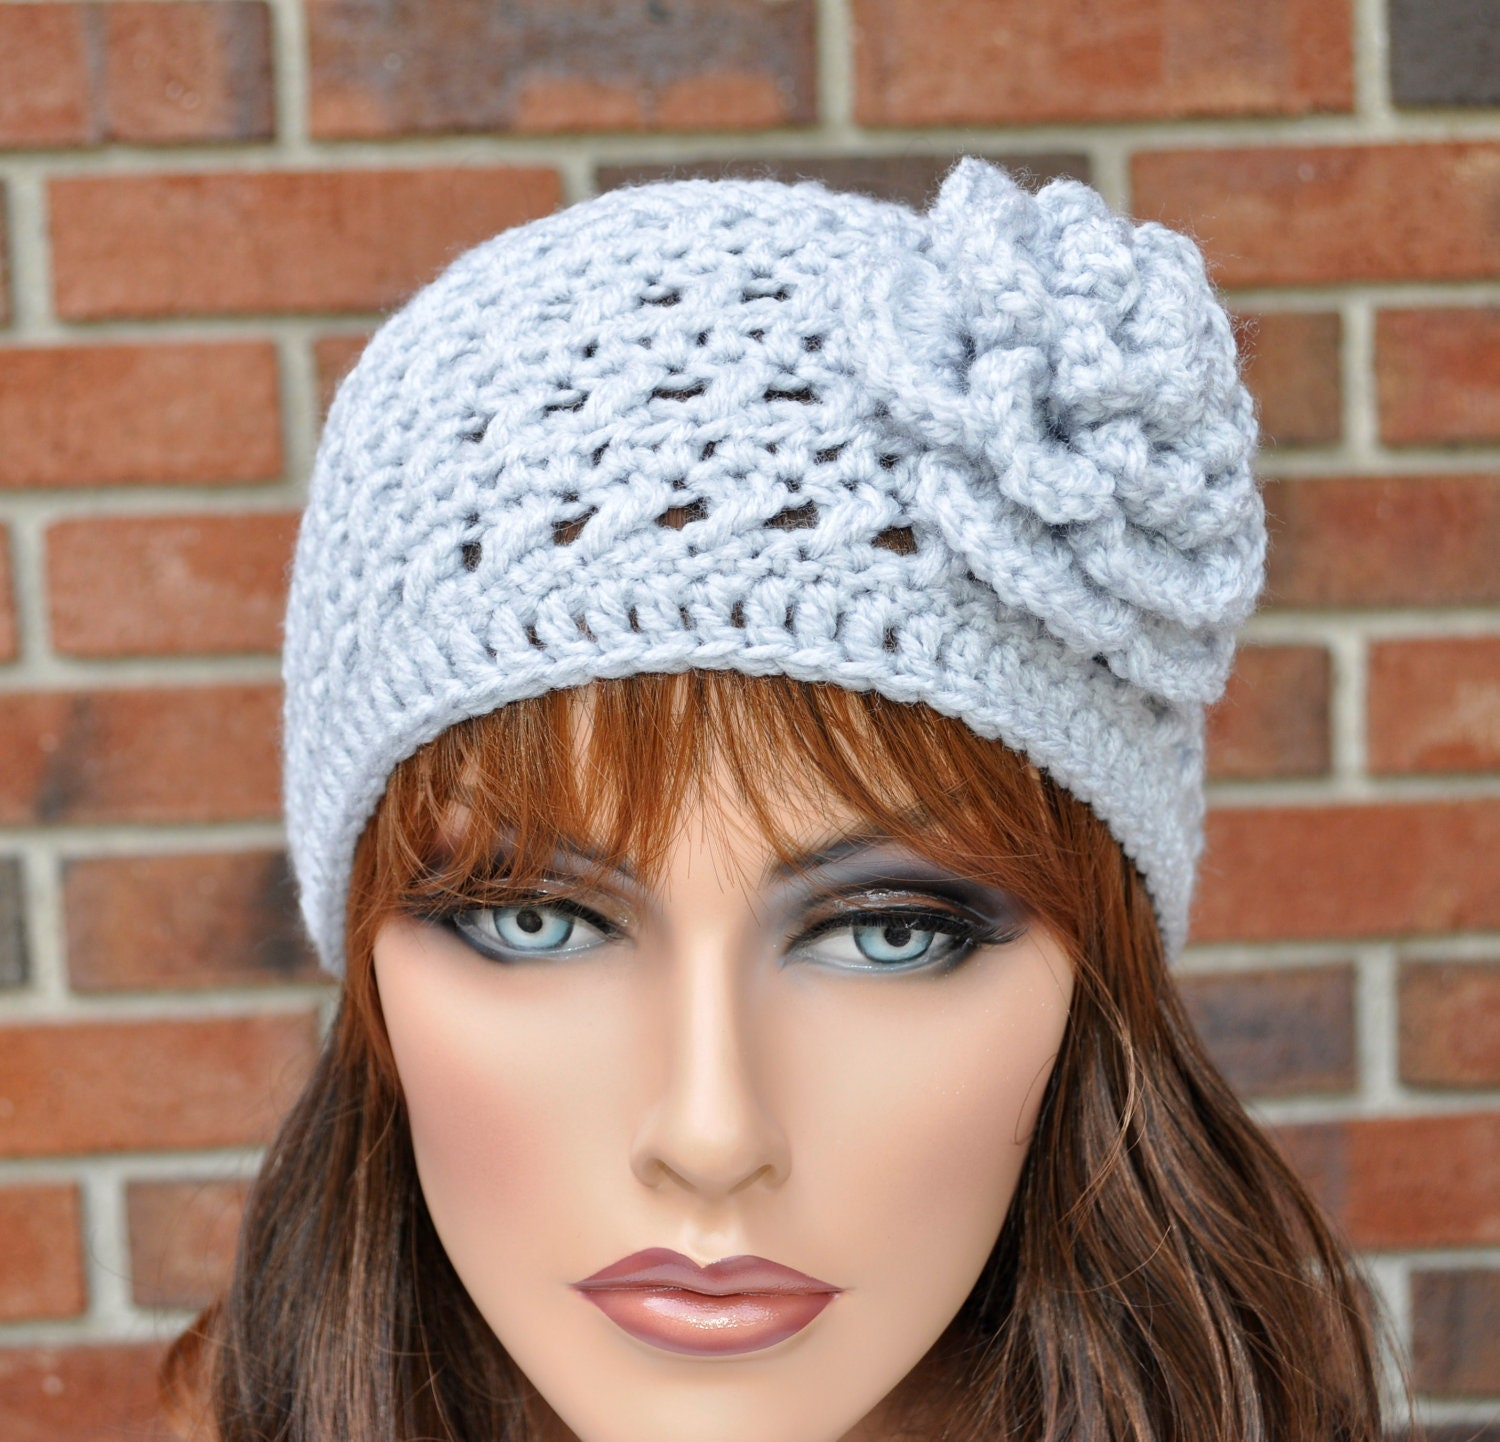 Free Crochet Pattern Flowers Headbands : Items similar to Extra wide Crochet Headband Ear Warmer ...